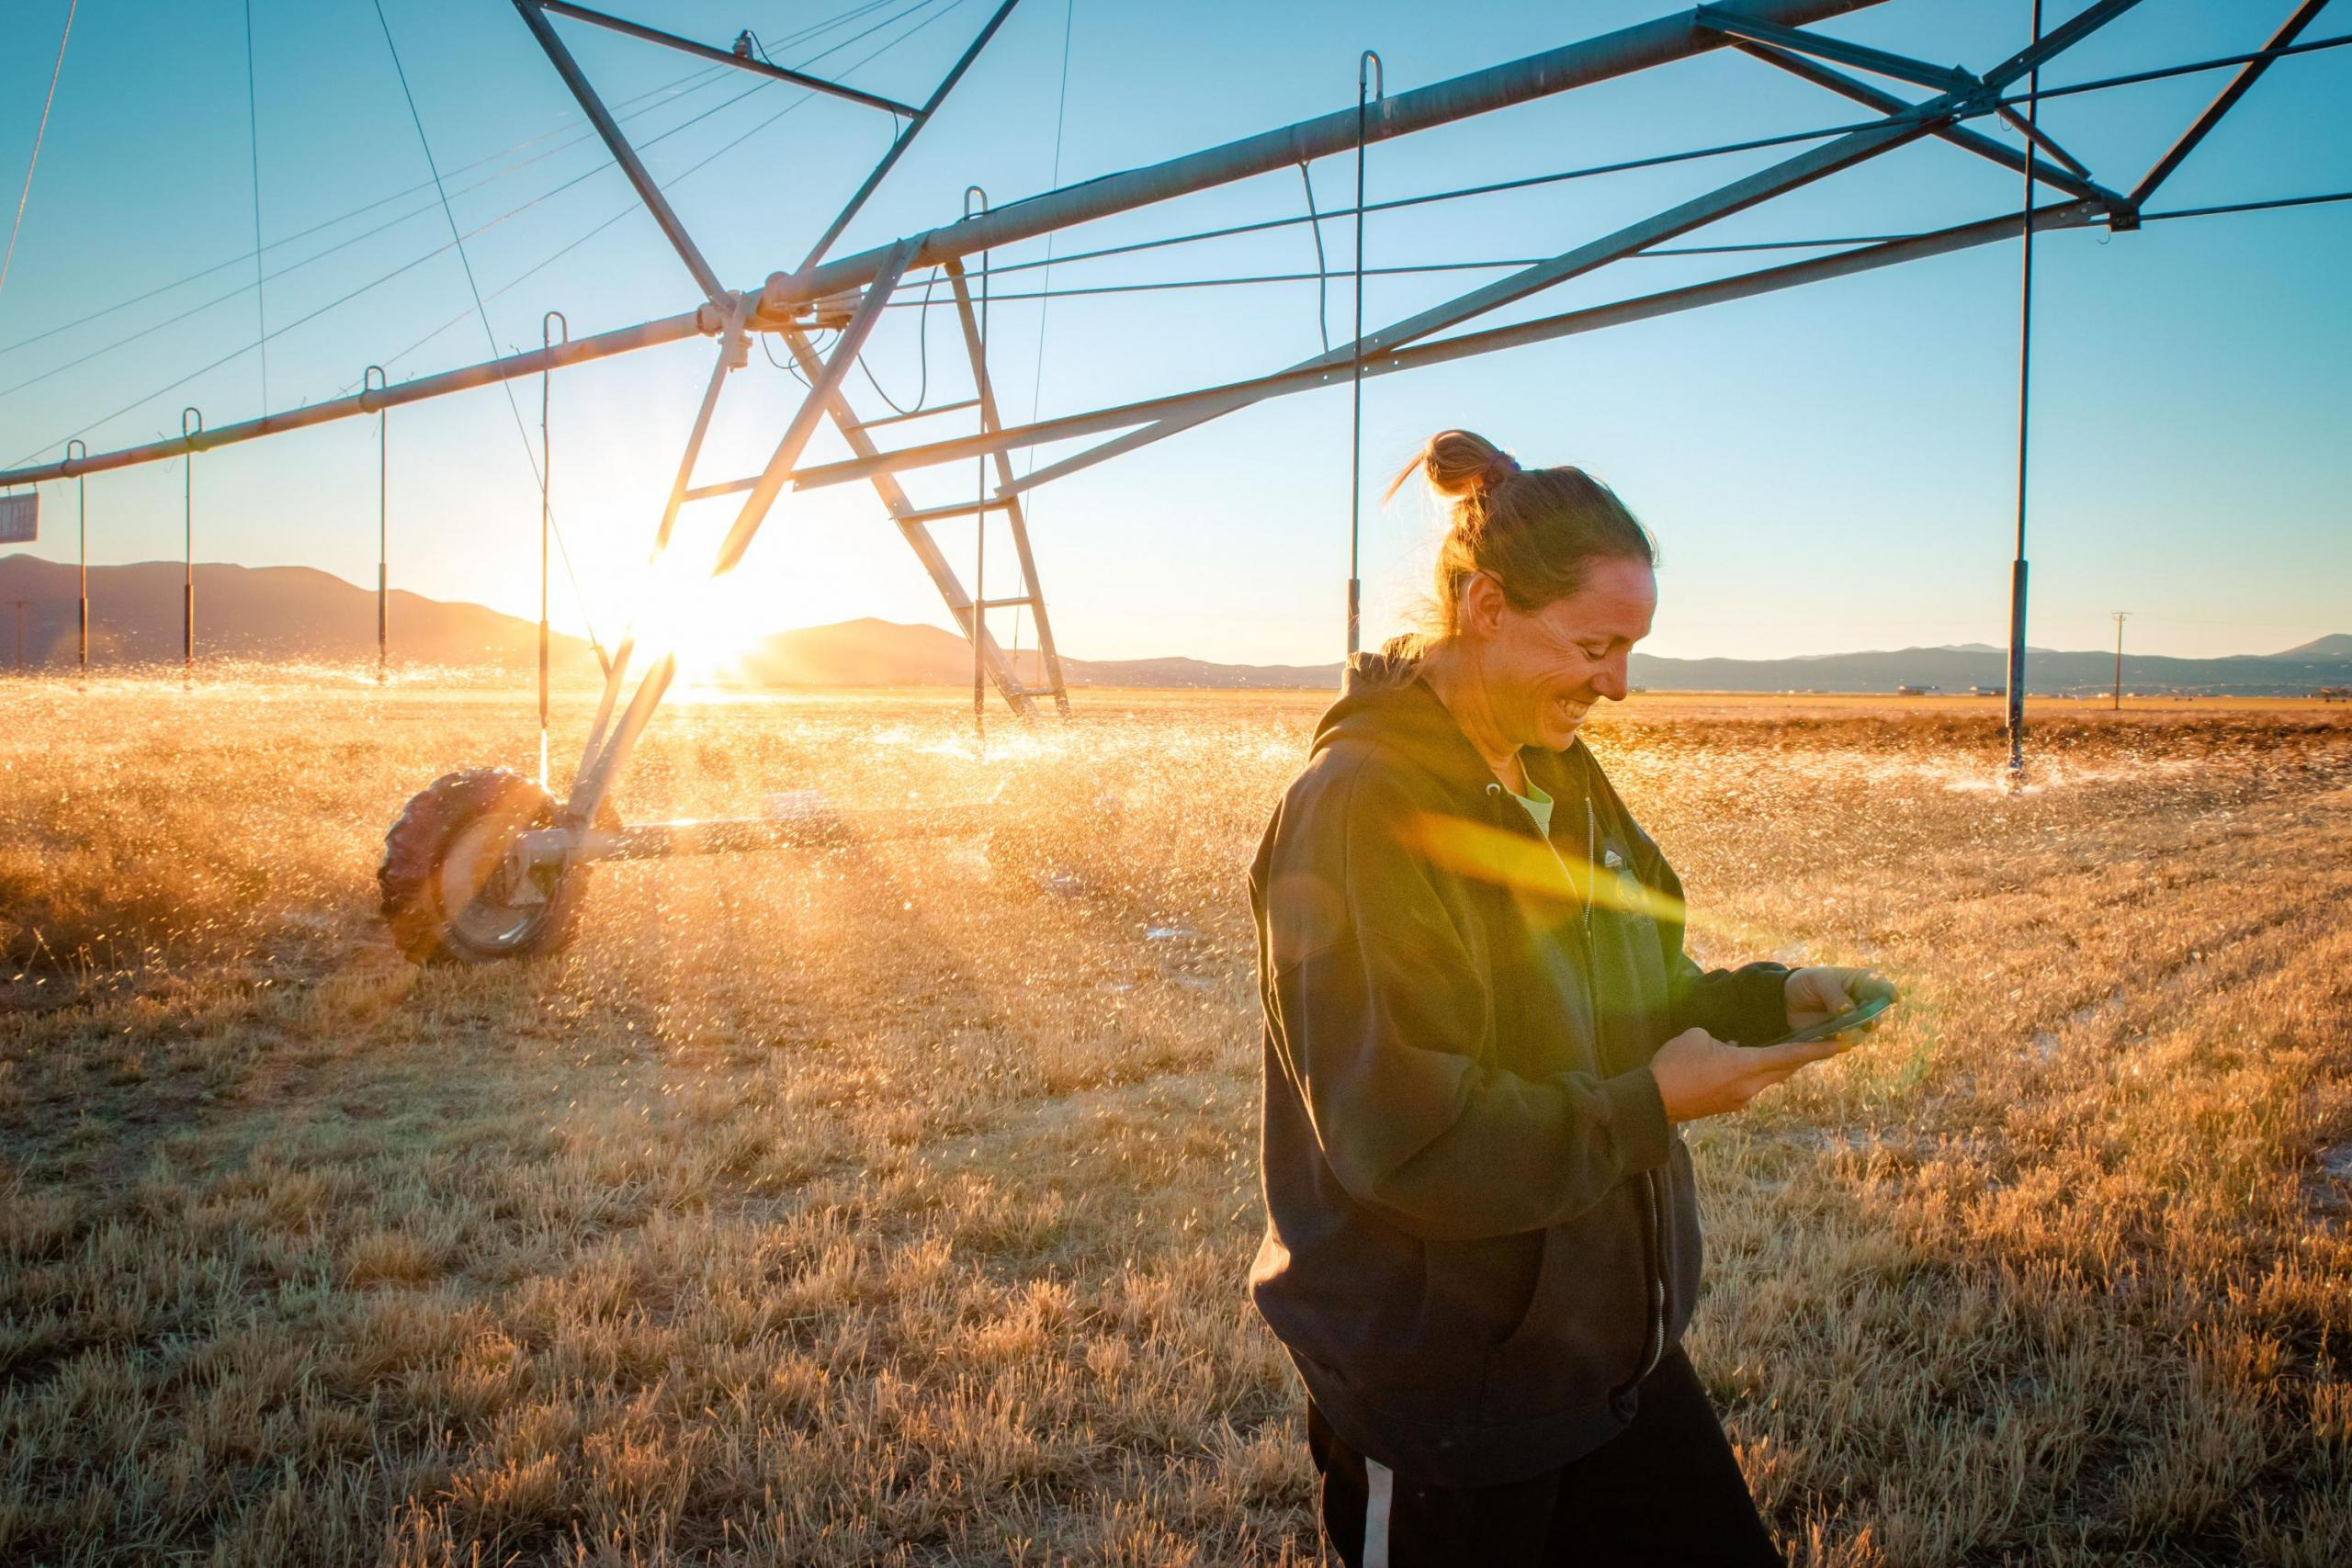 Woman standing in a crop field with irrigation equipment.